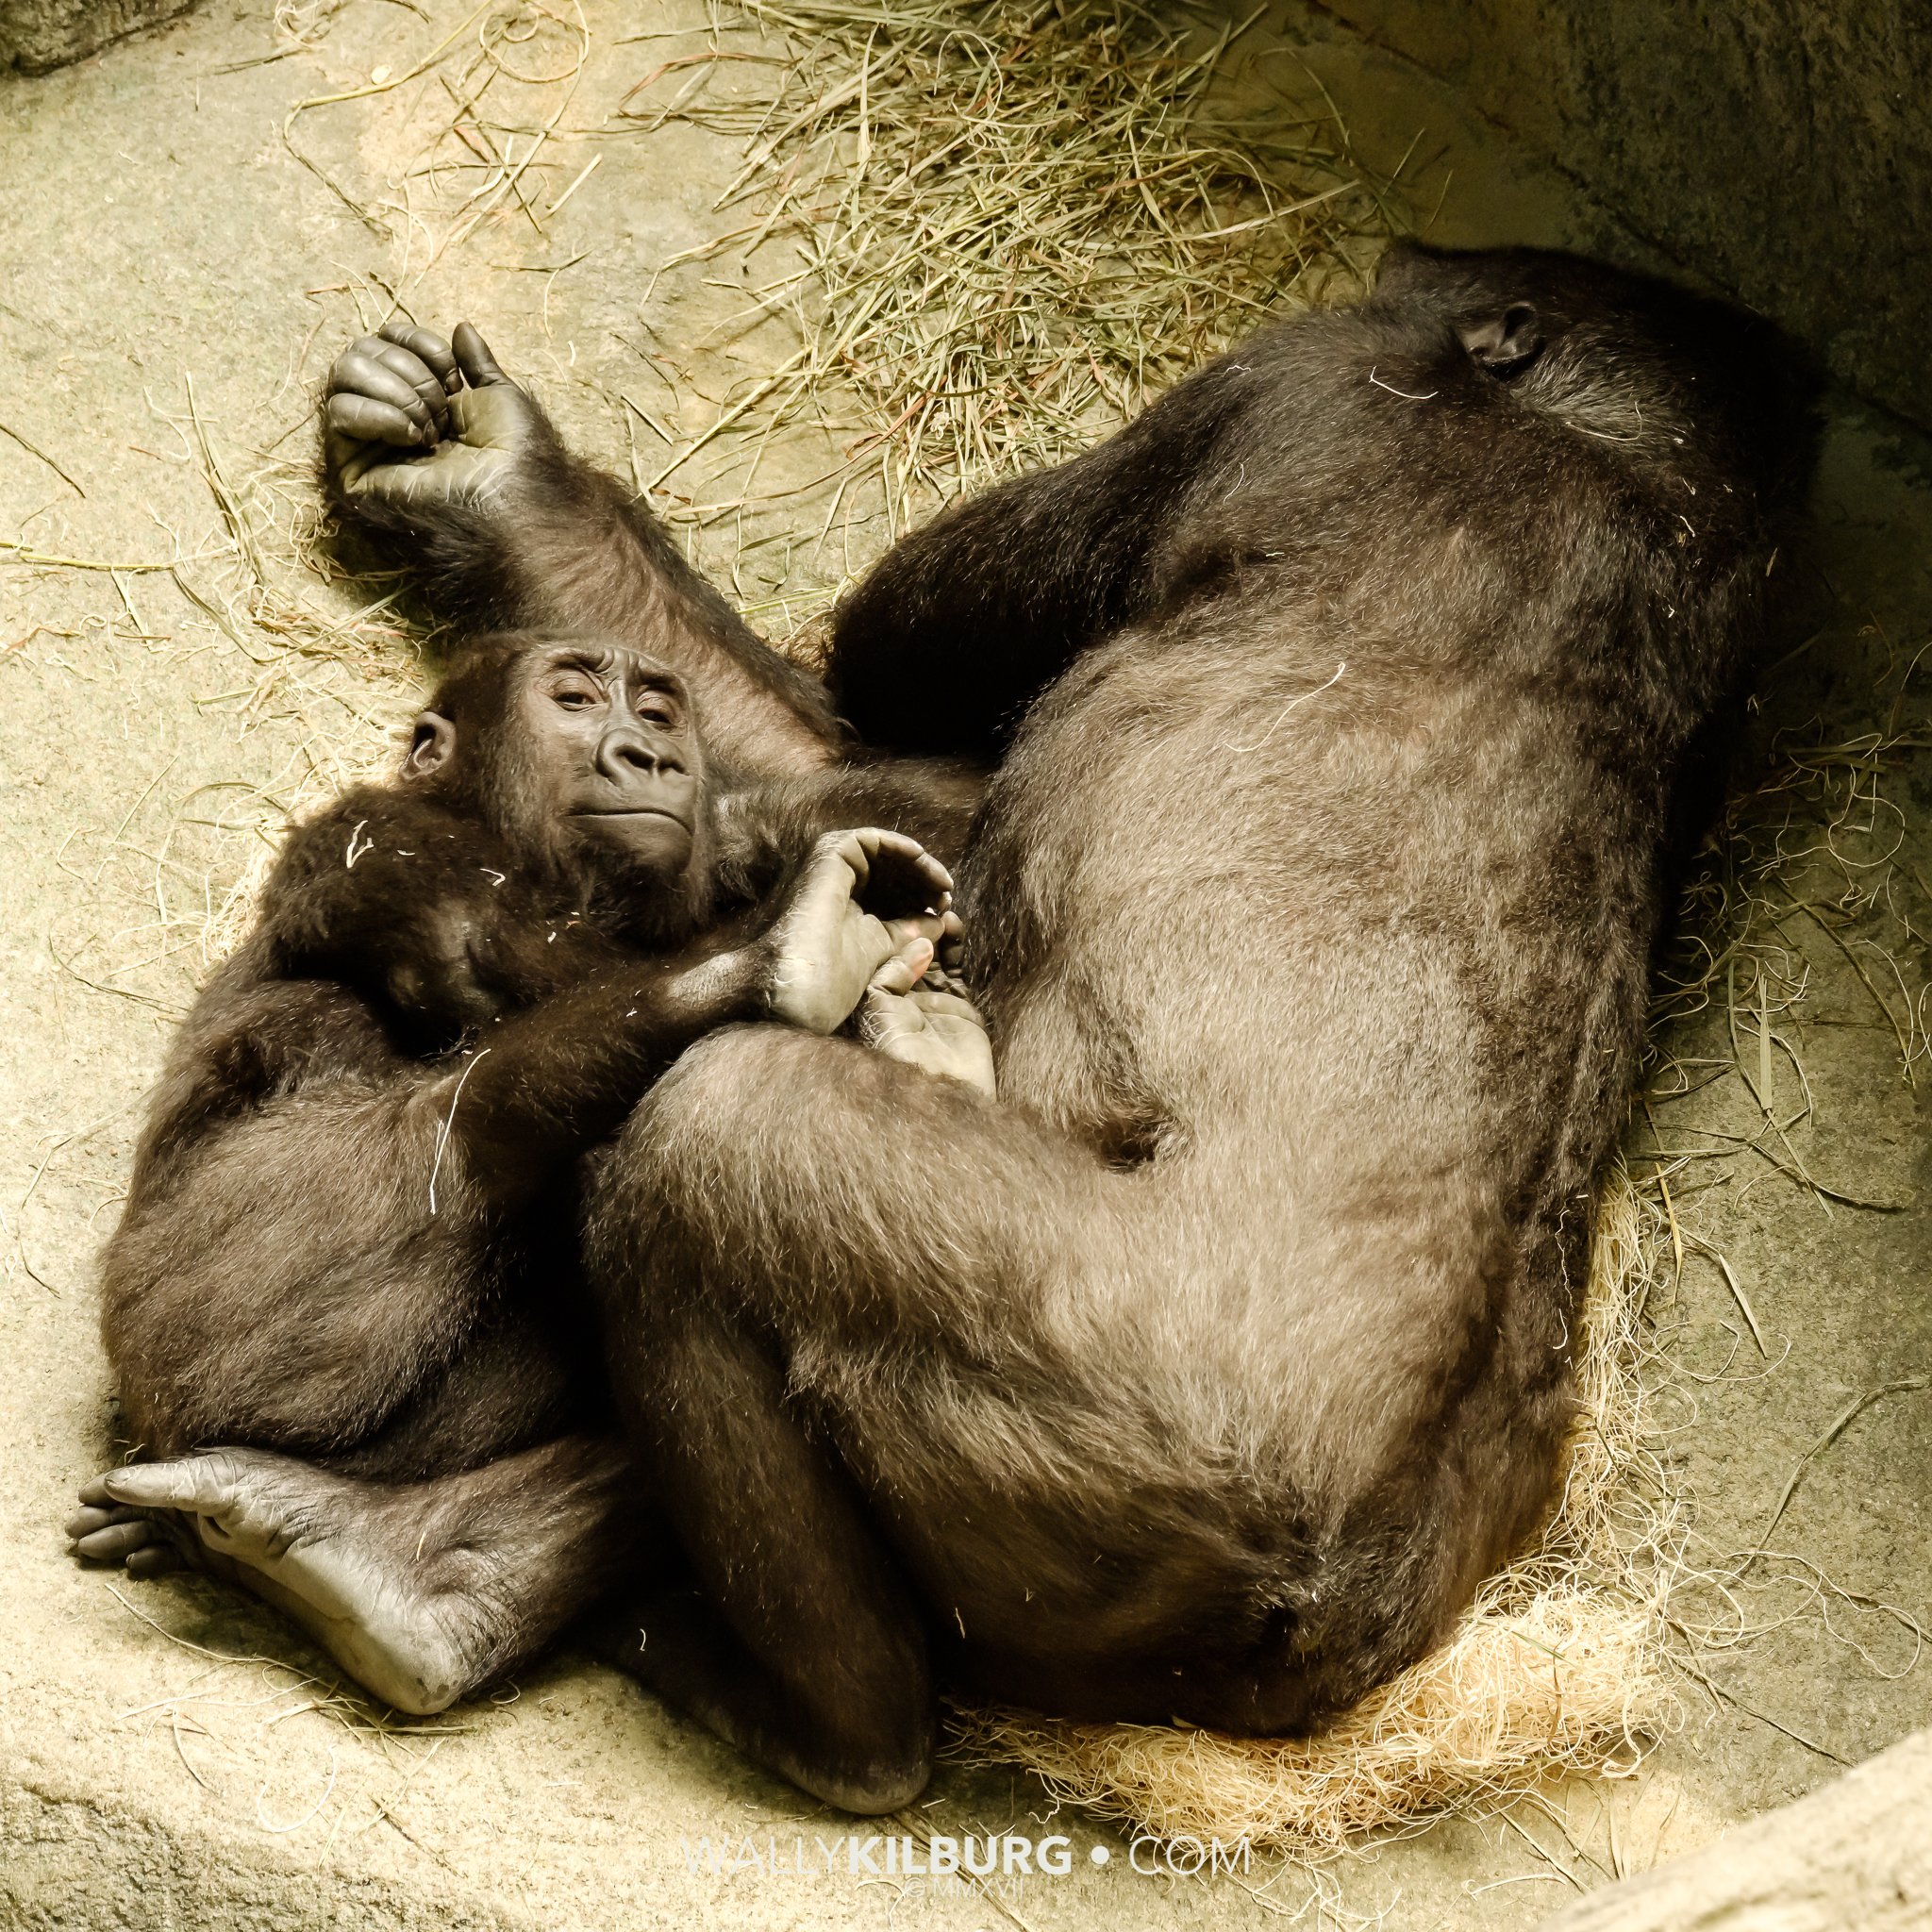 Momma and baby at the Zoo.